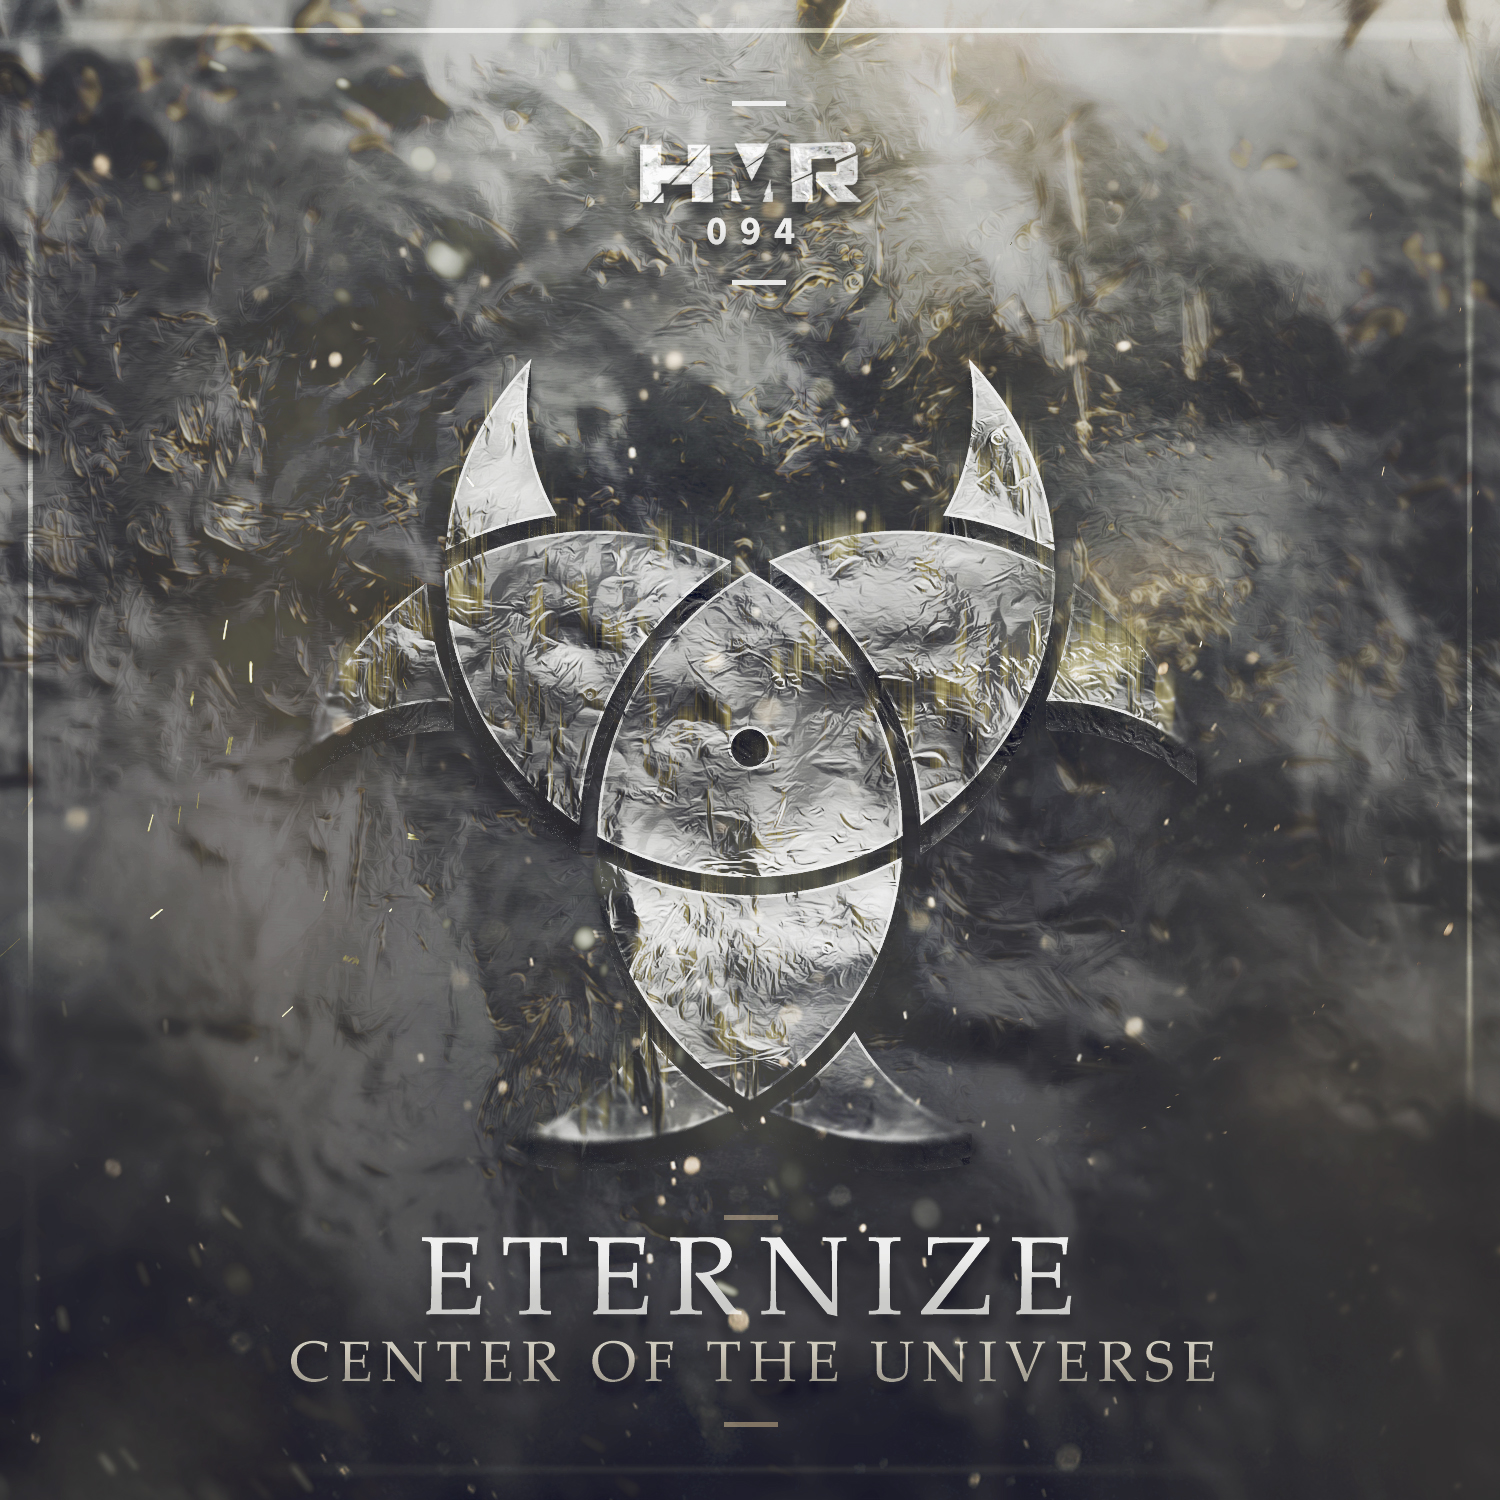 Center Of The Universe by Eternize